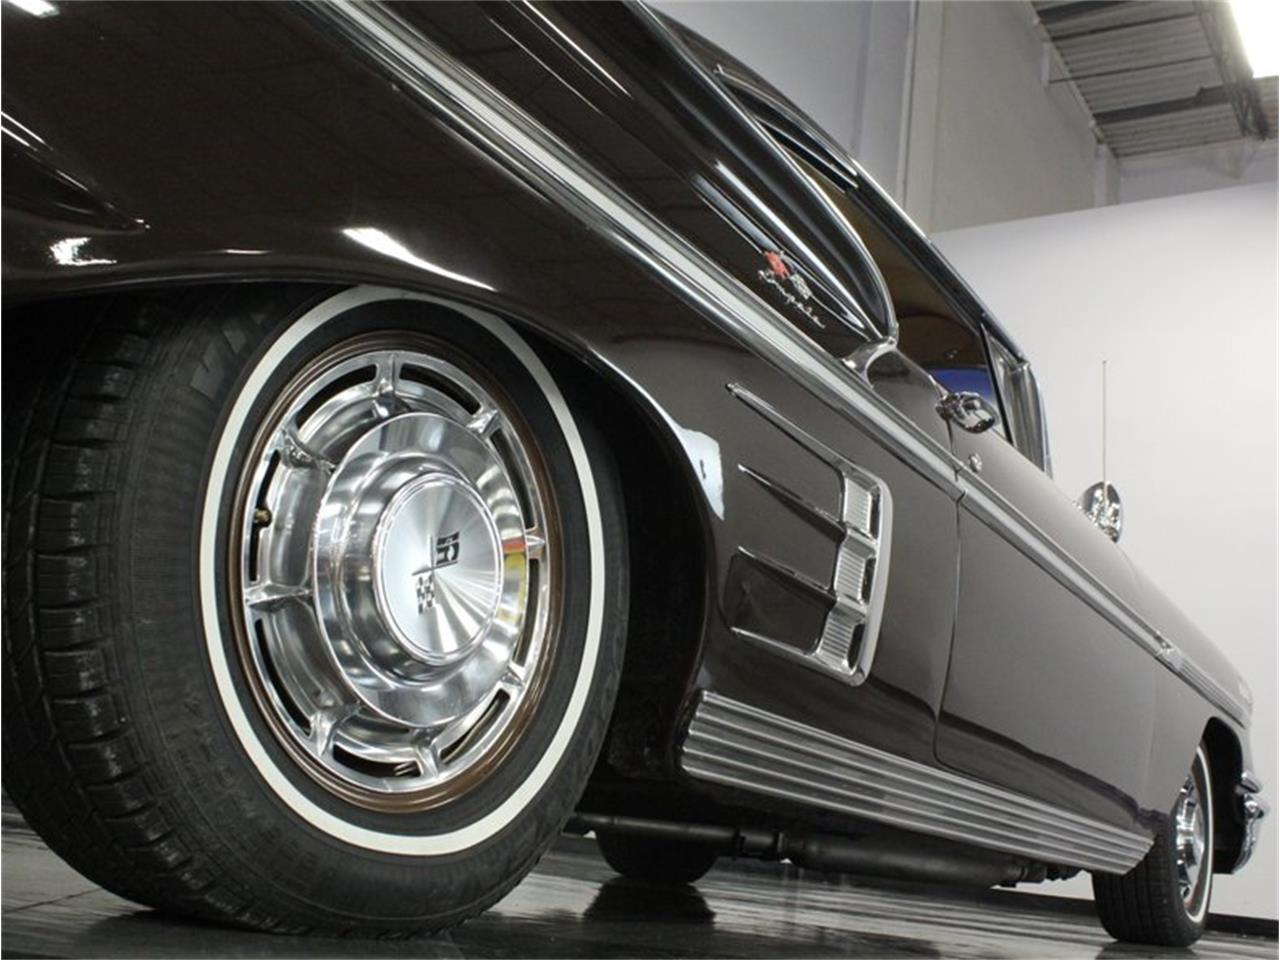 Large Picture of Classic '58 Chevrolet Impala - $44,995.00 Offered by Streetside Classics - Dallas / Fort Worth - HX8B